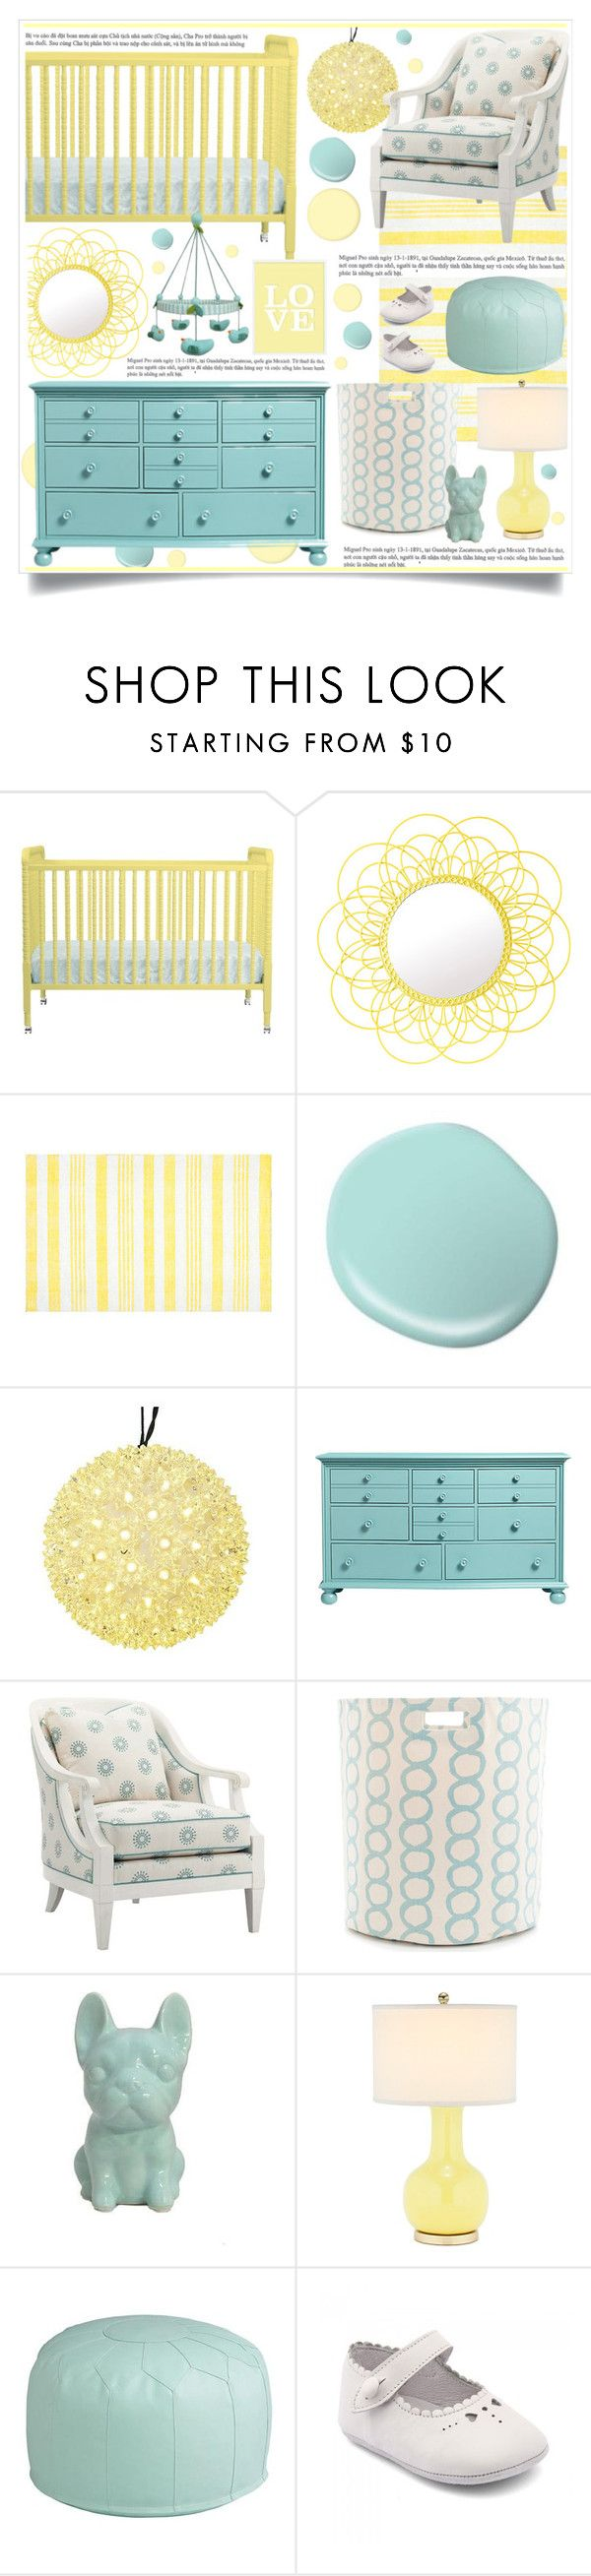 """Aqua & Yellow Nursery"" by hmb213 ❤ liked on Polyvore featuring interior, interiors, interior design, home, home decor, interior decorating, DaVinci, Pols Potten, Tommy Bahama and Fresh American"